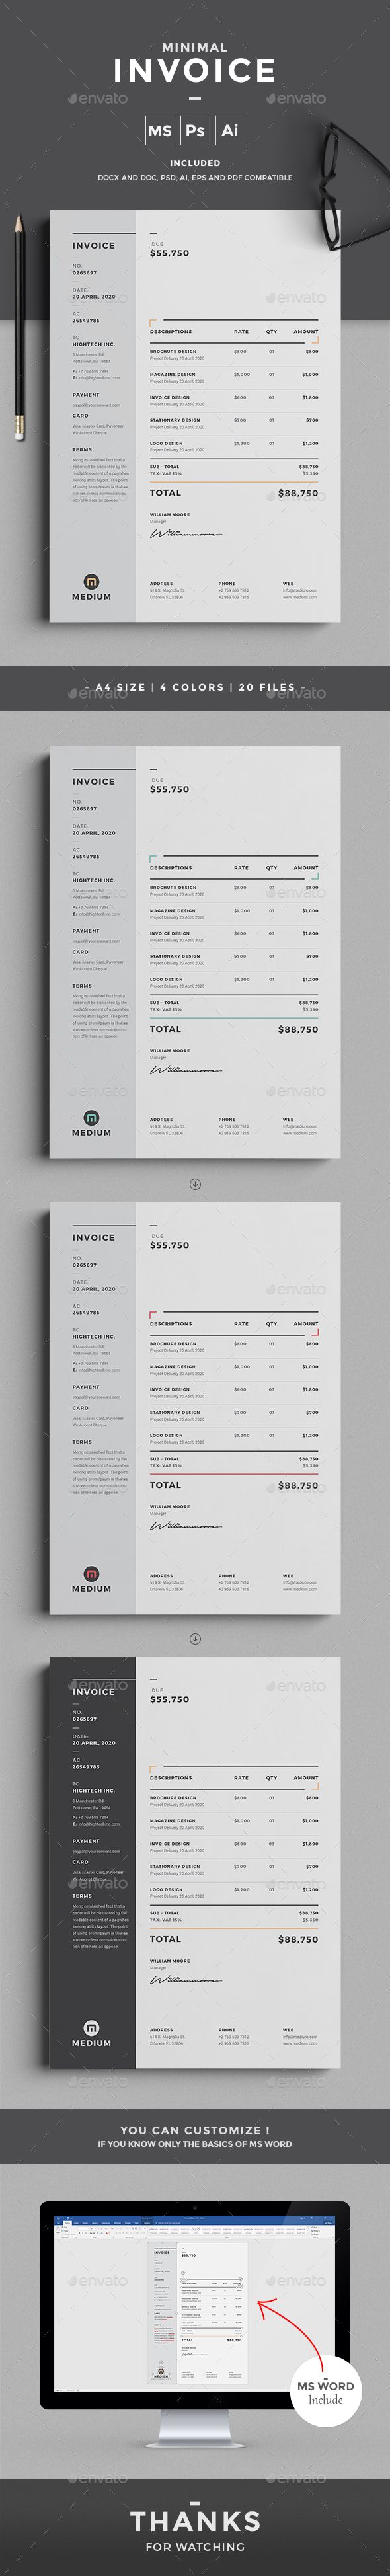 Invoice by design-park This professional minimal Invoice template will help you in your business to save time, organize you product data and customers in